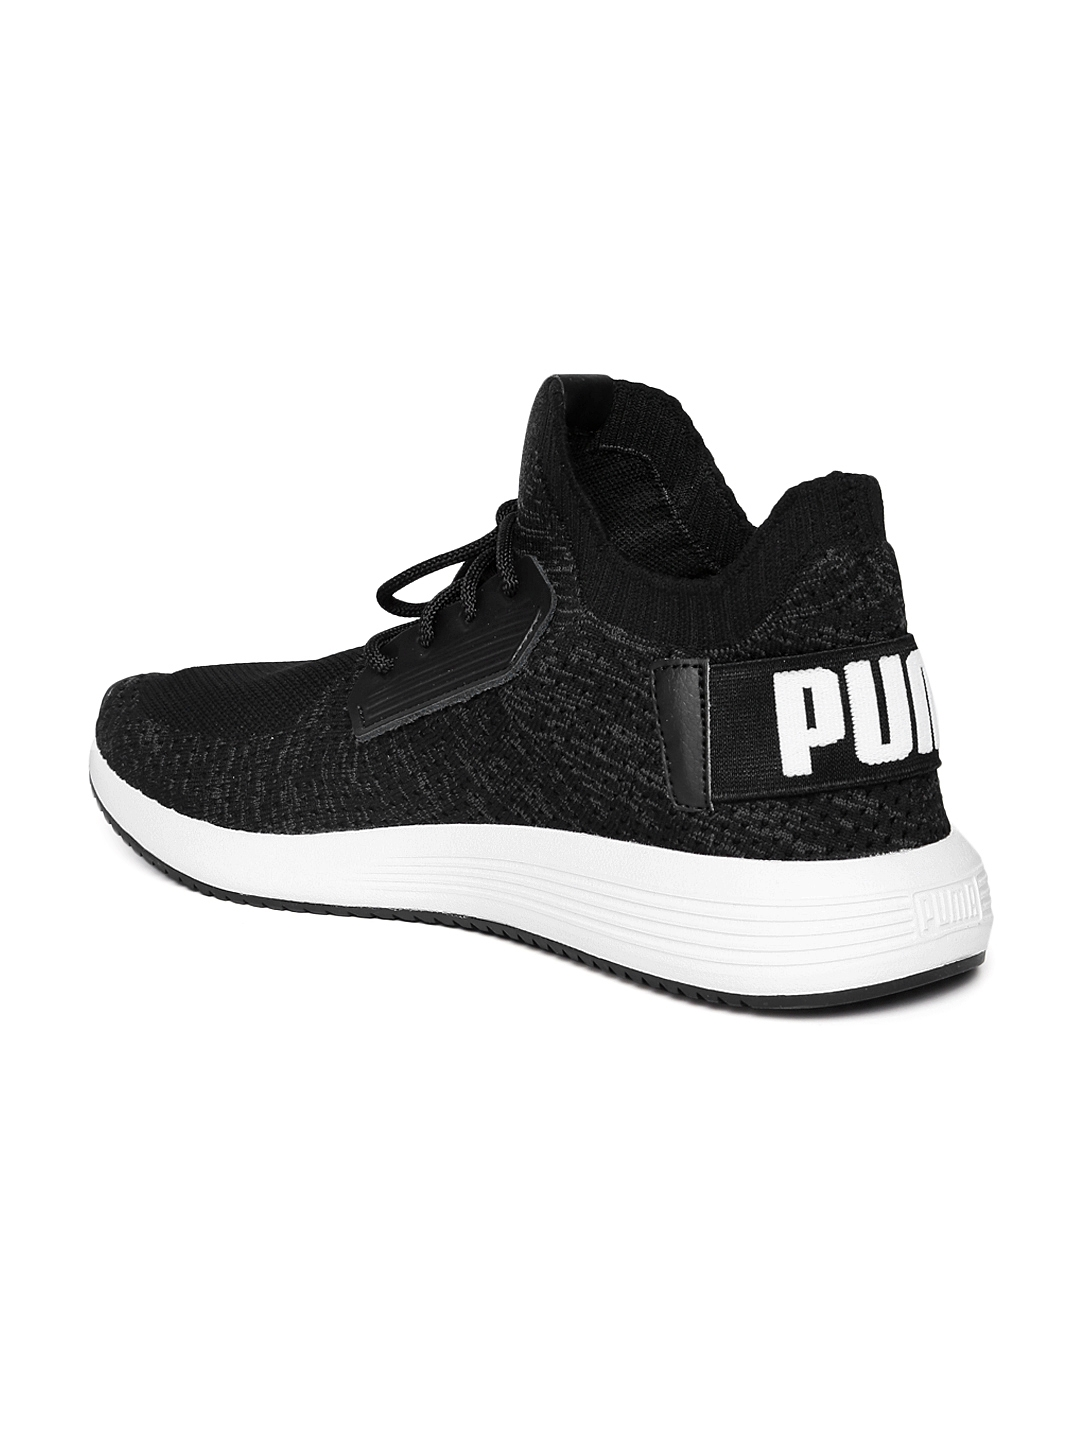 Buy Puma Men Black Uprise Knit Mid Top Sneakers - Casual Shoes for ... 45bf42805